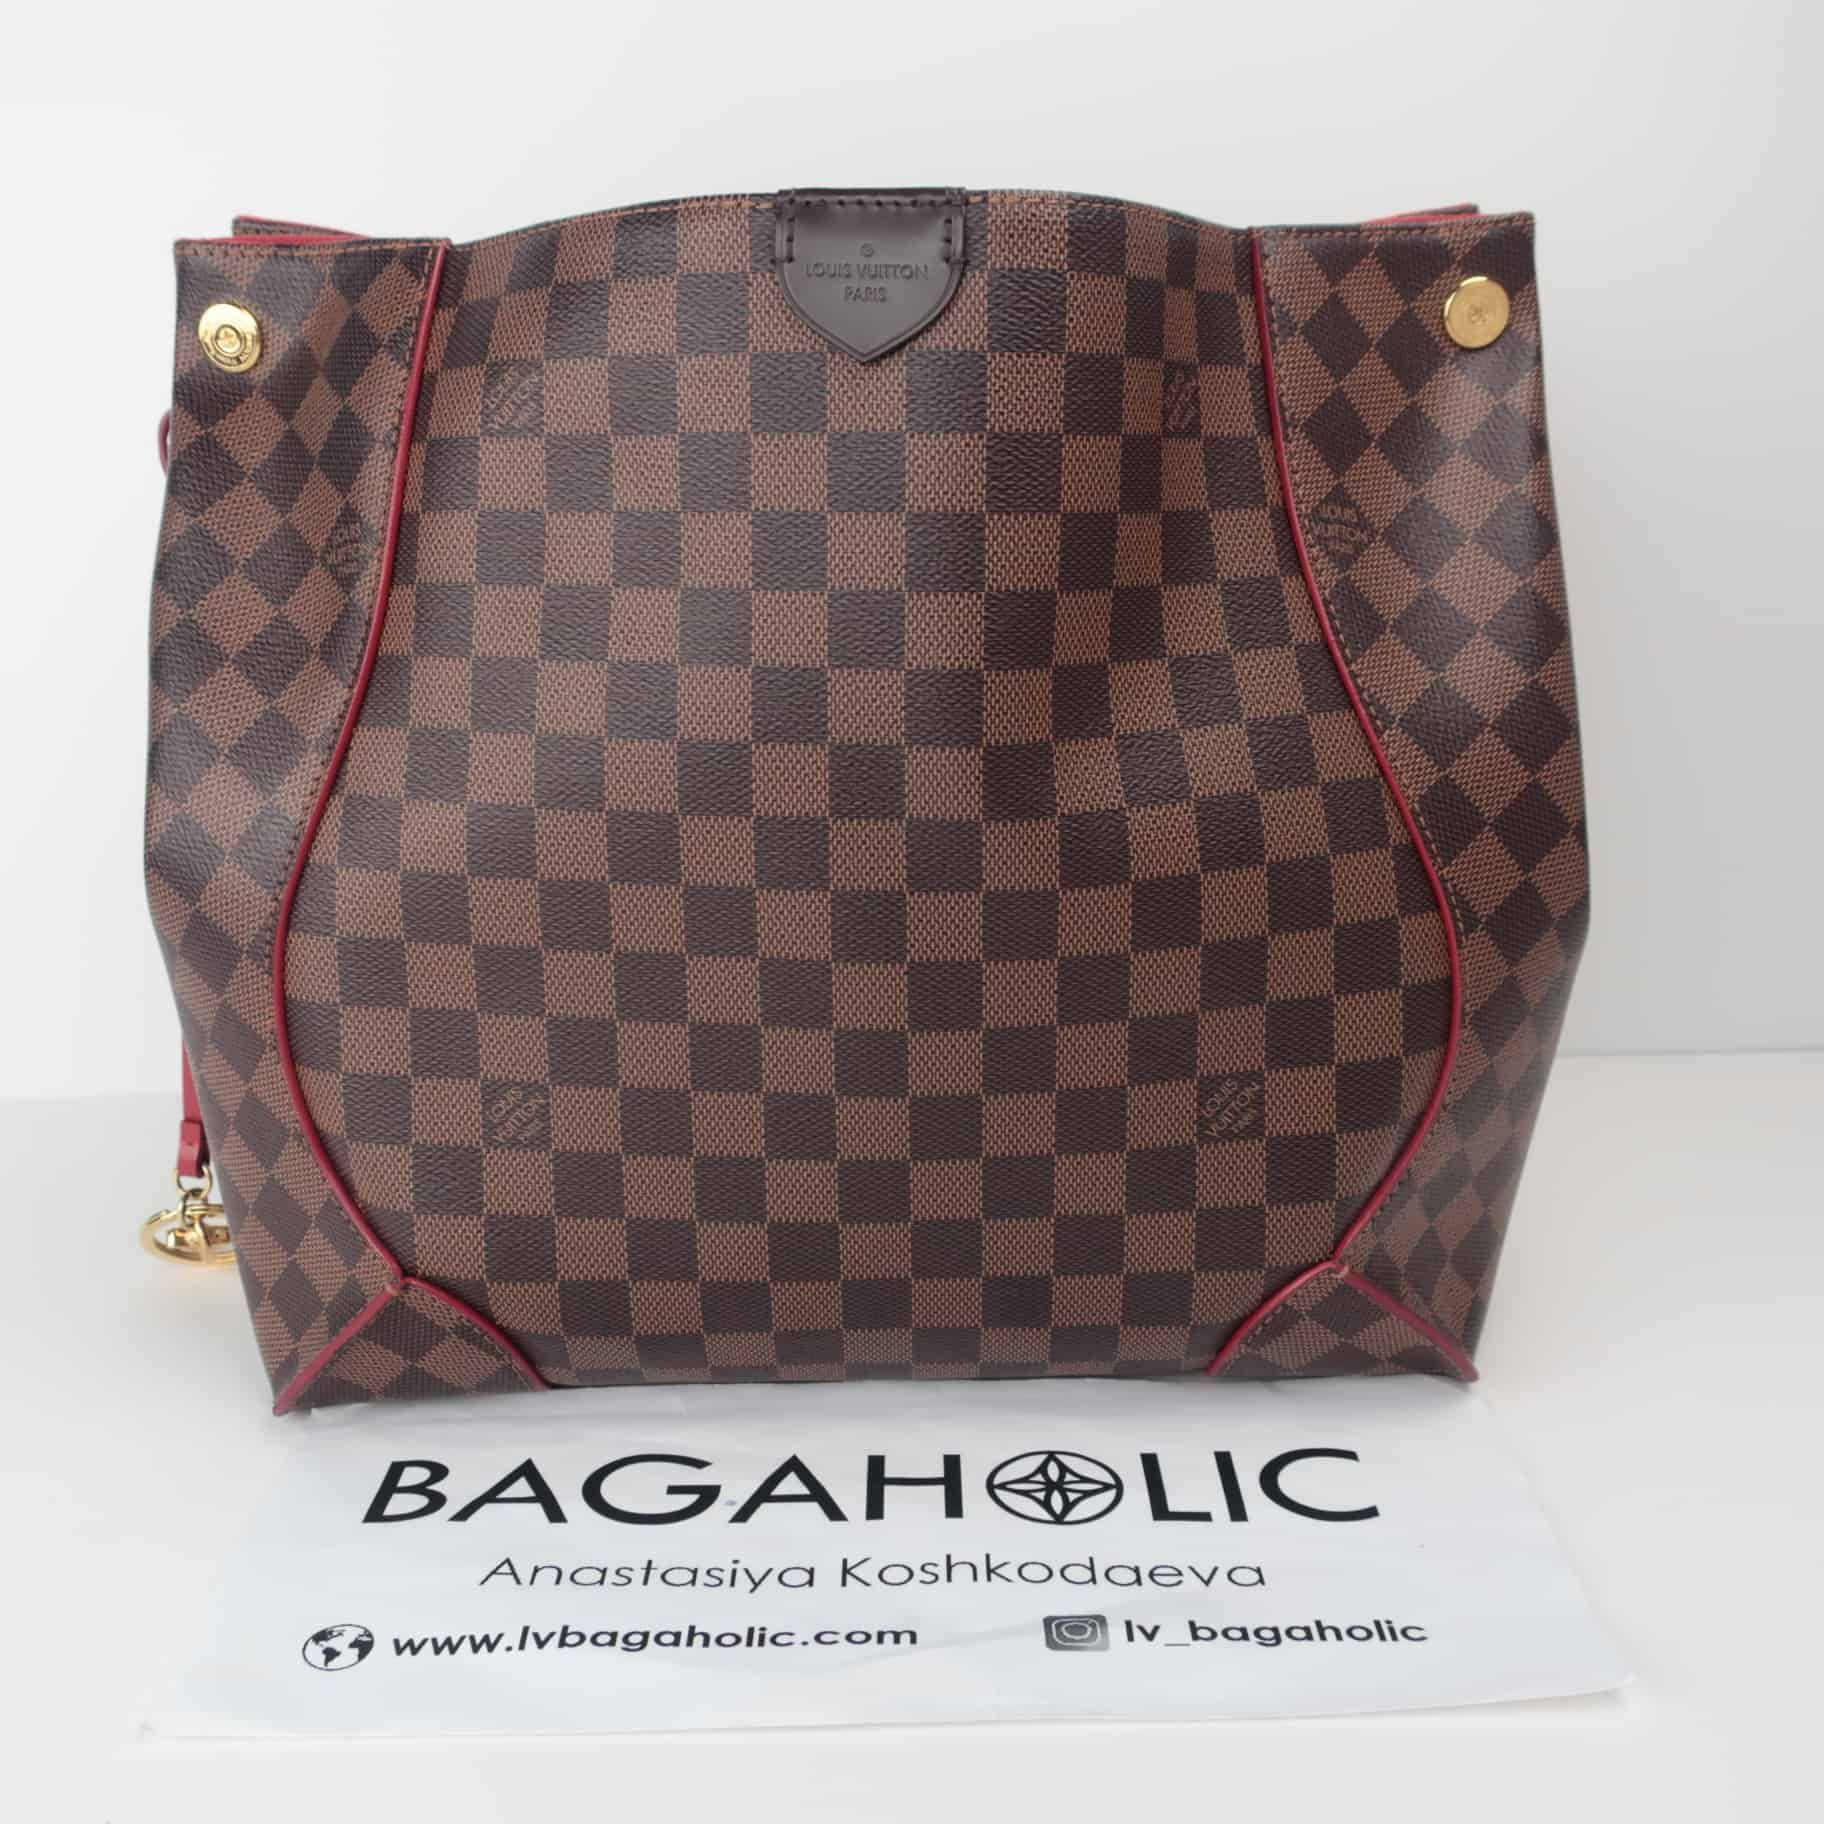 74d63e08ead6 Louis Vuitton Caissa Hobo Damier Ebene Red bag - Reetzy